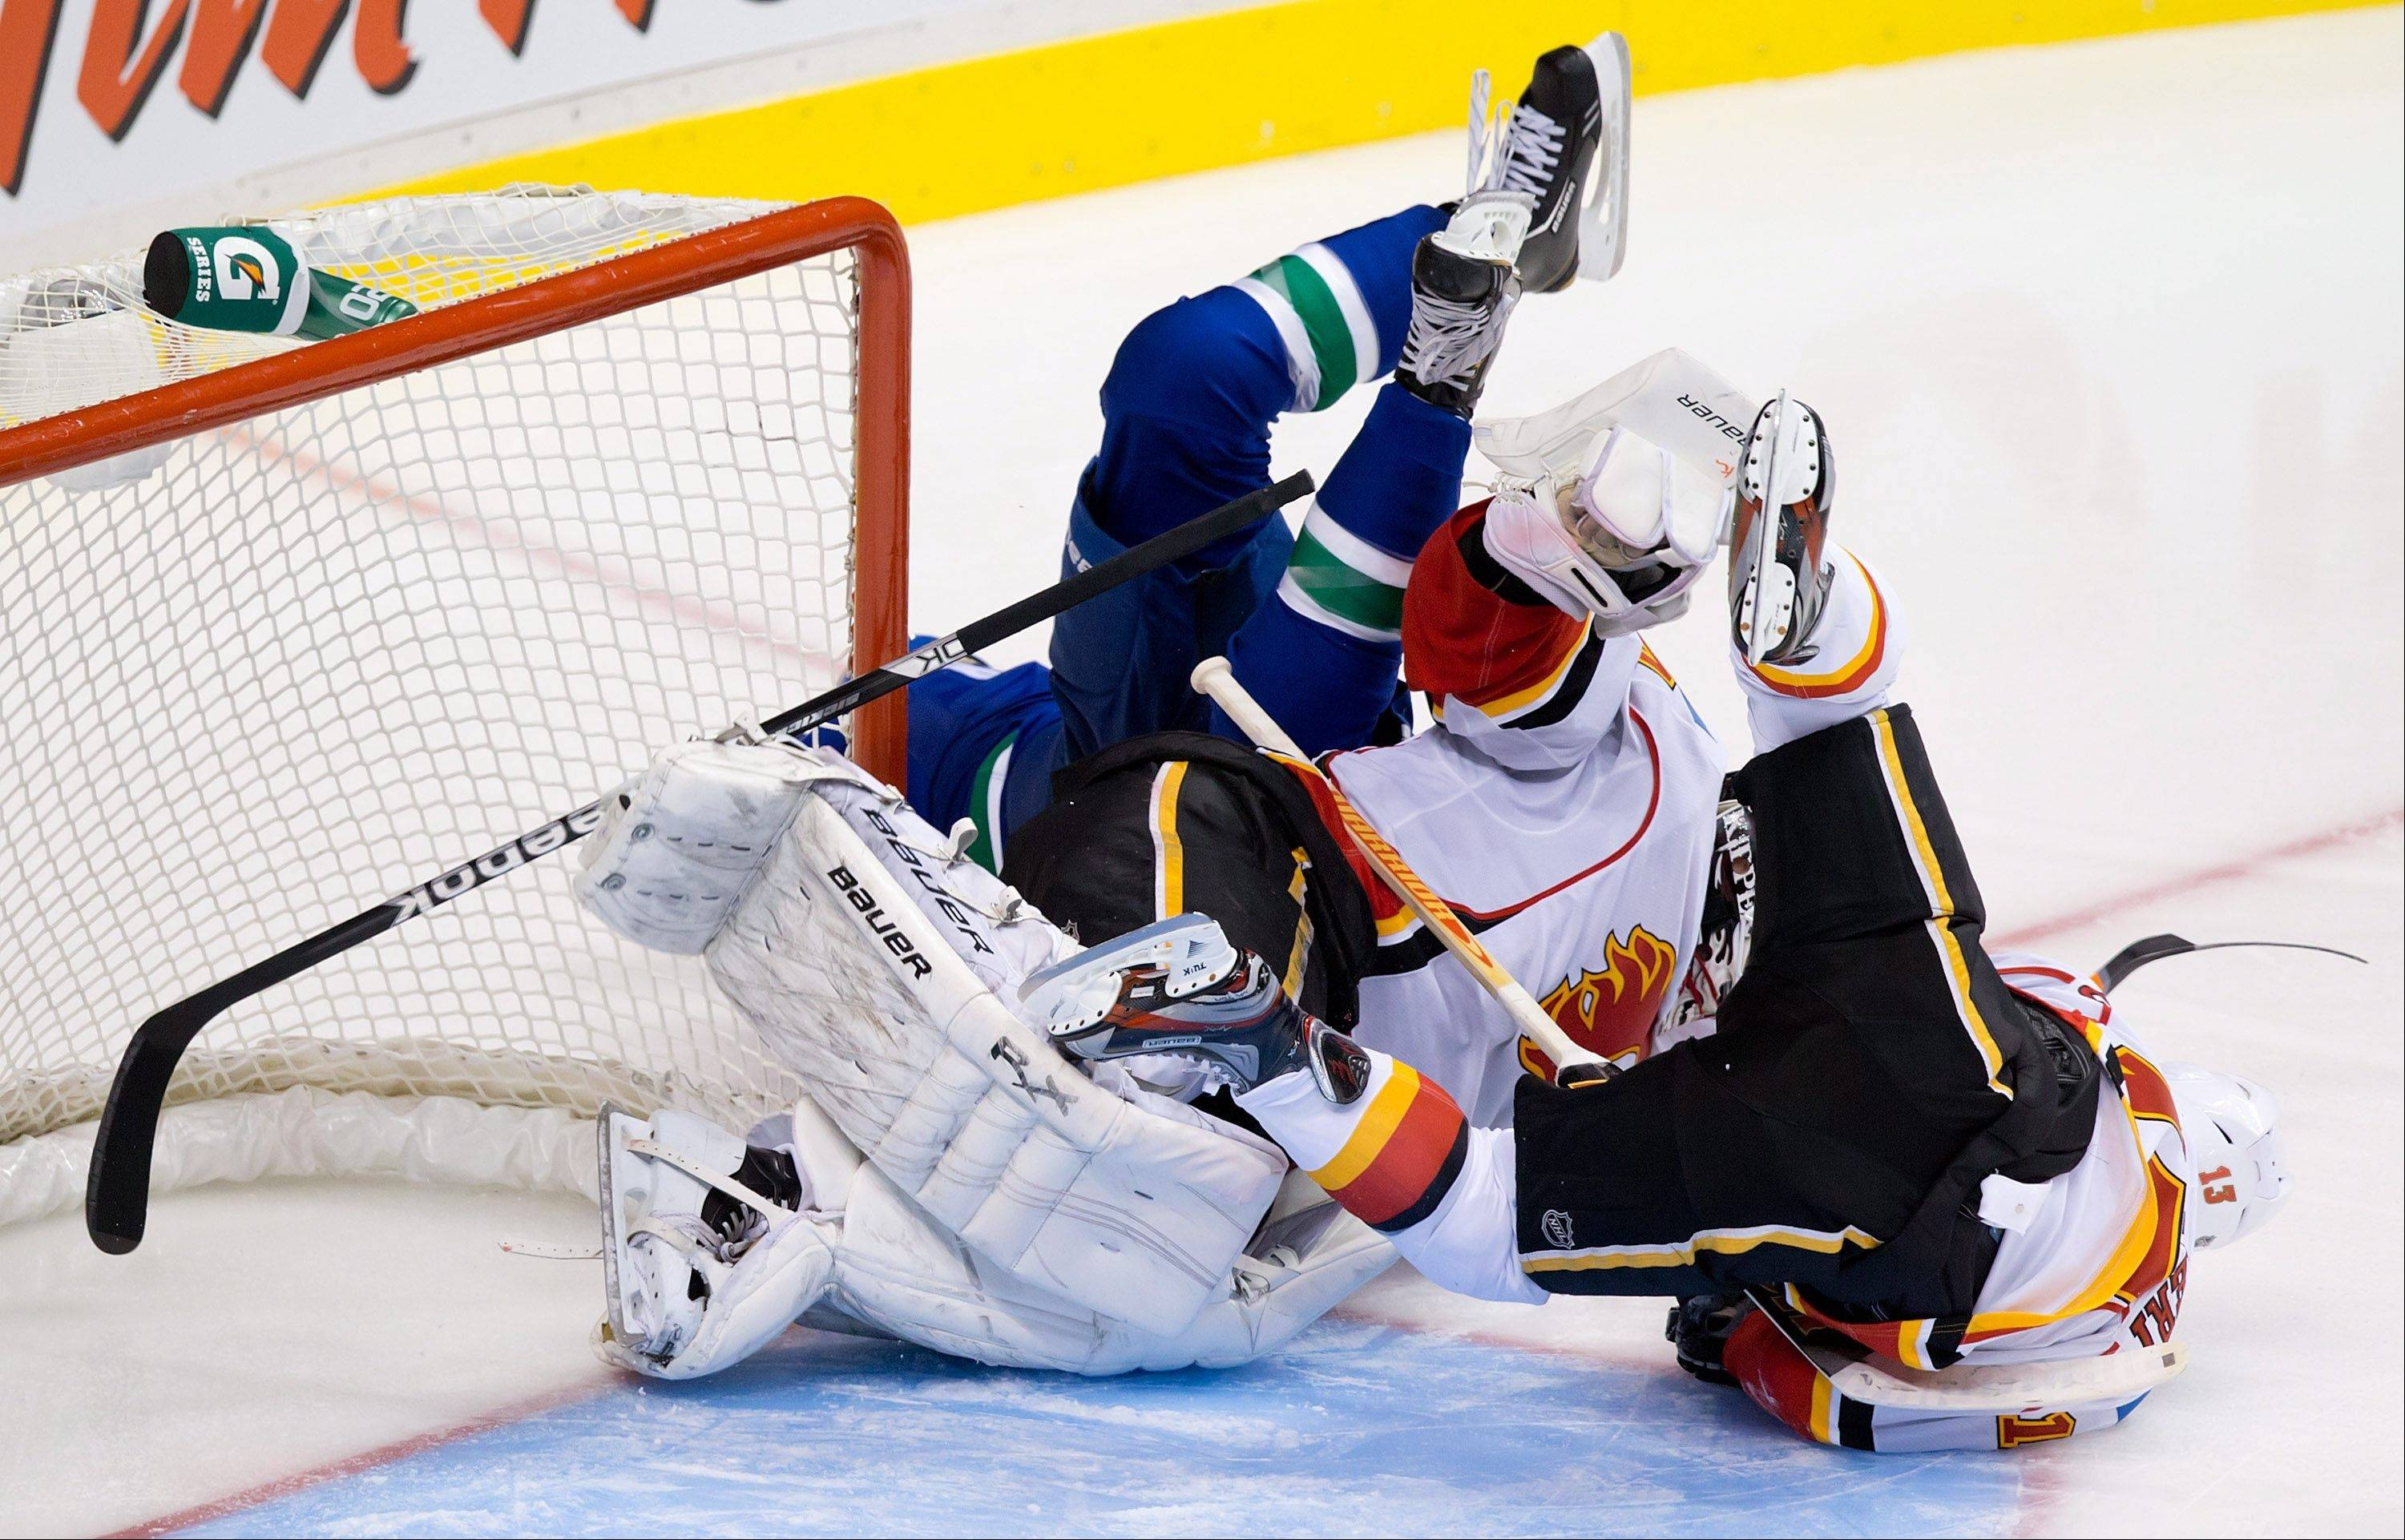 Vancouver Canucks� Zack Kassian, left, crashes into Calgary Flames goalie Miikka Kiprusoff, of Finland, and Mike Cammalleri, right, during the third period of an NHL hockey game in Vancouver, British Columbia.